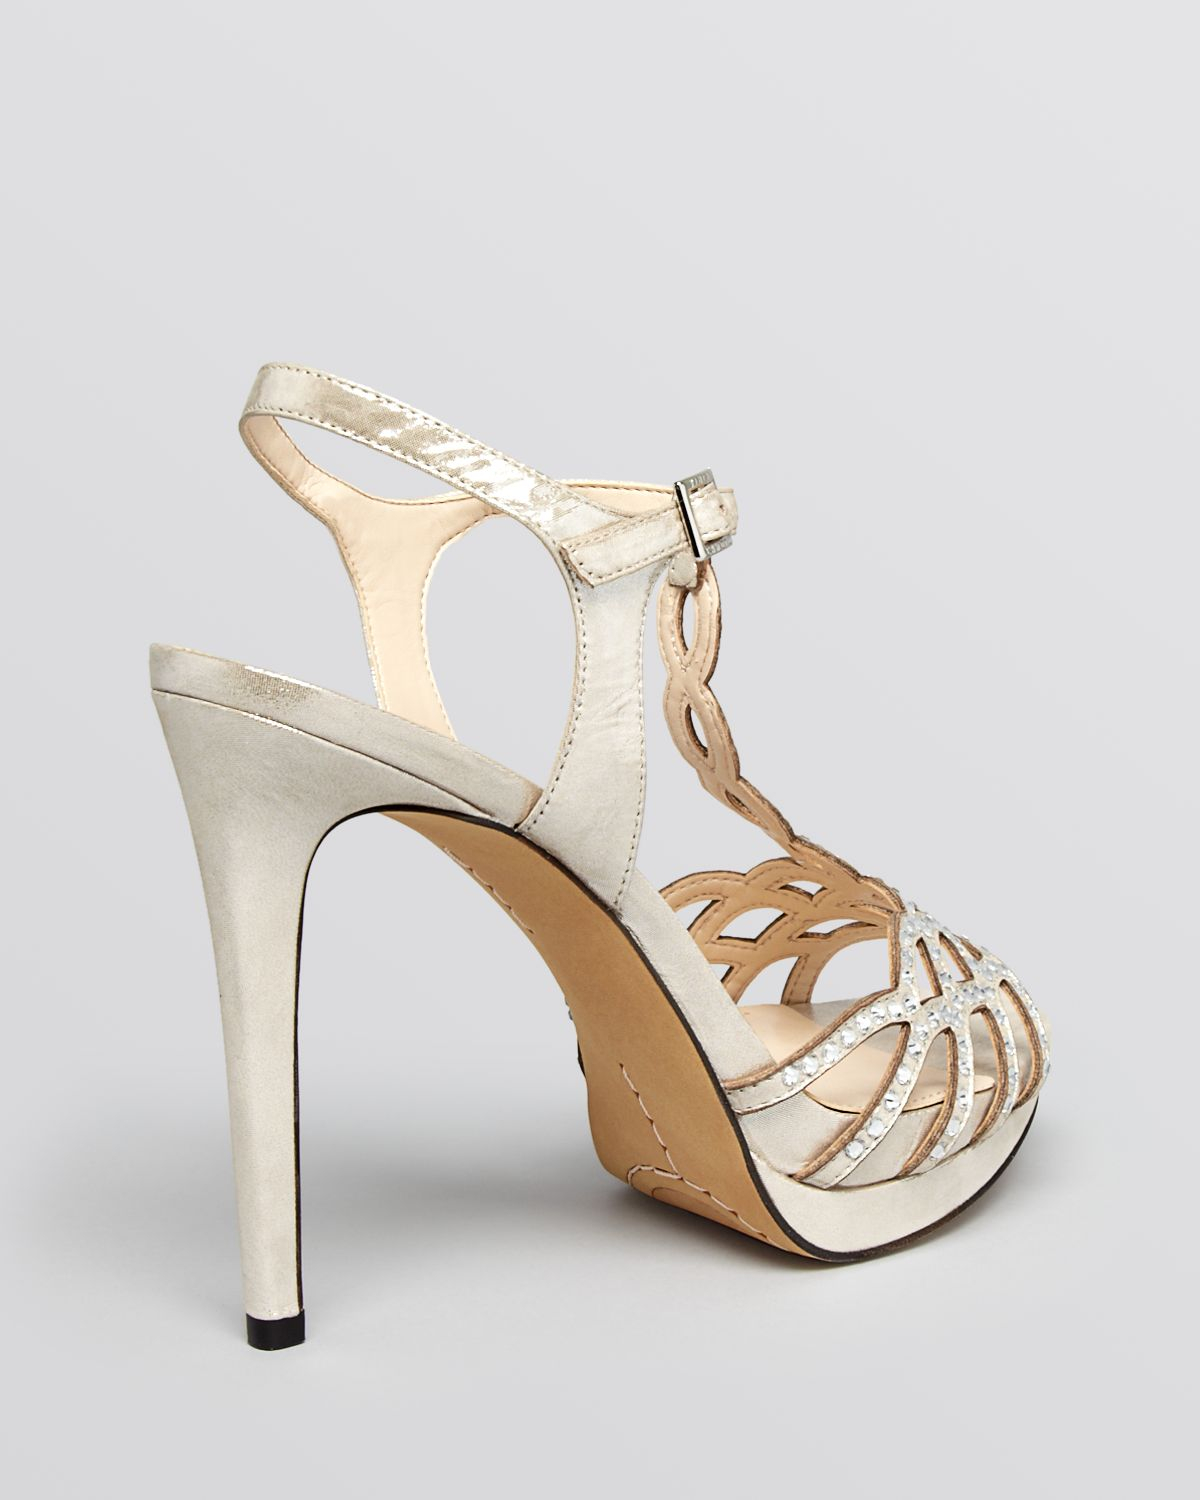 High Heel Sandals With Ankle Strap And Platform